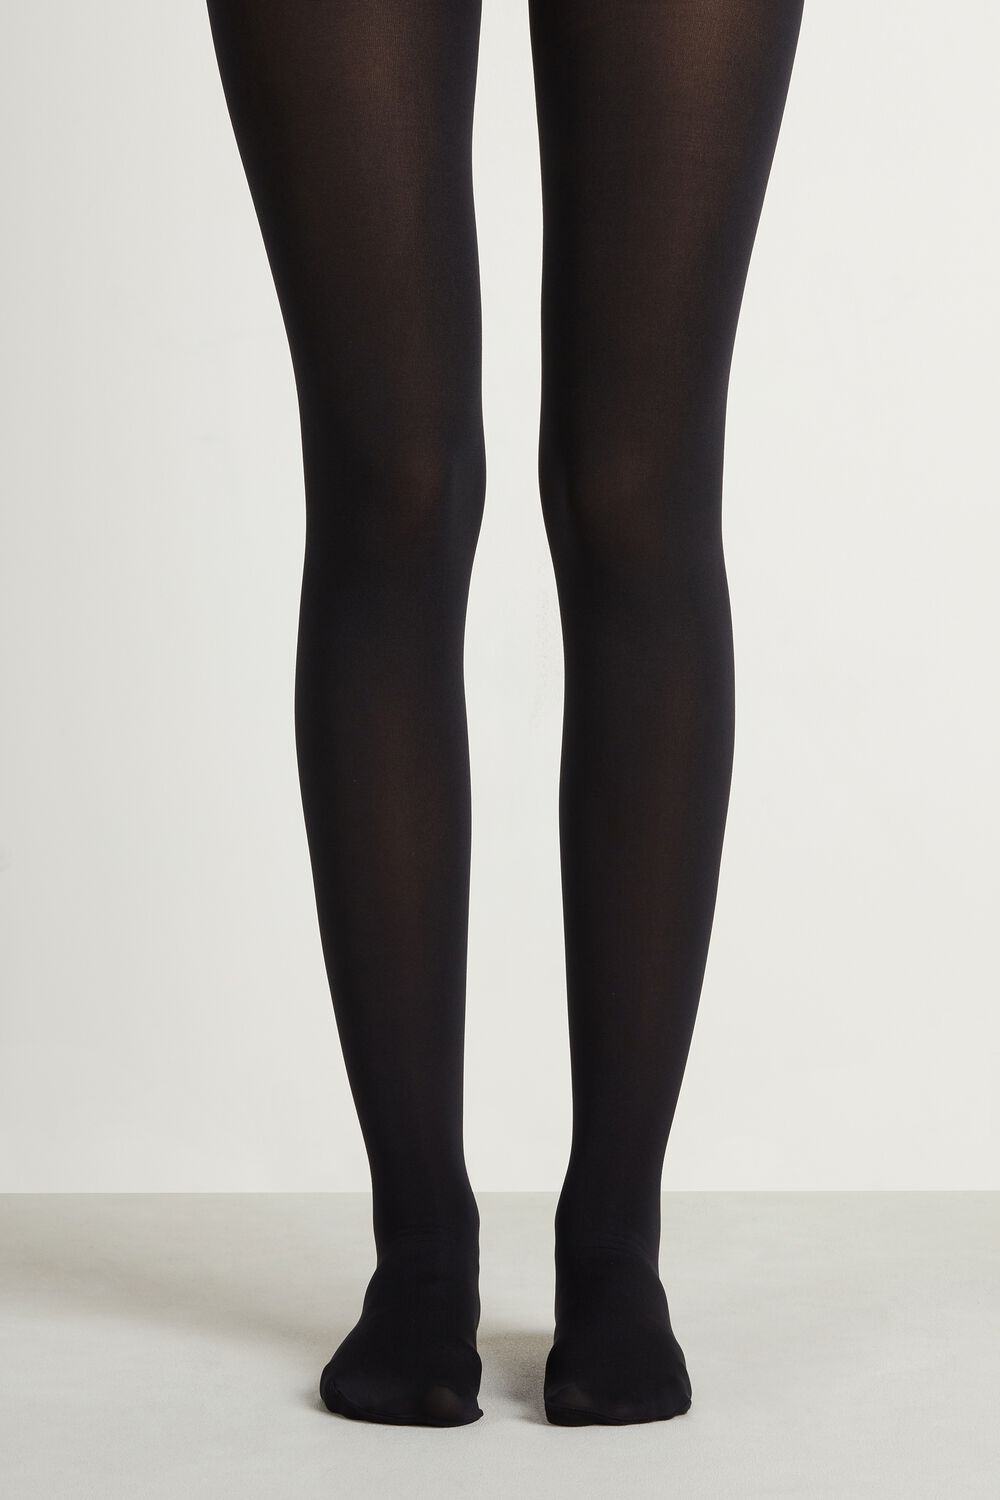 2 X 100 Den Ultra Opaque Microfibre Tights